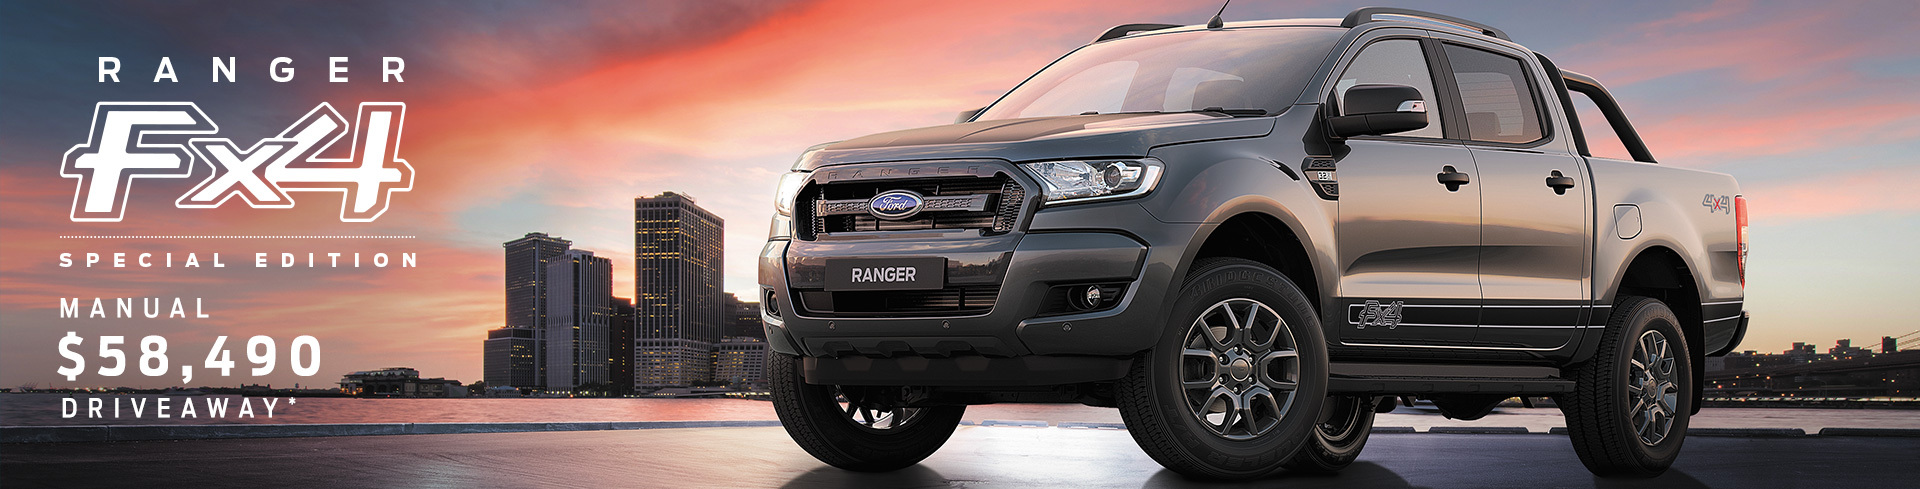 Ford - National Offer - Ranger 4x4 Special Edition; Manual $58,490 driveaway